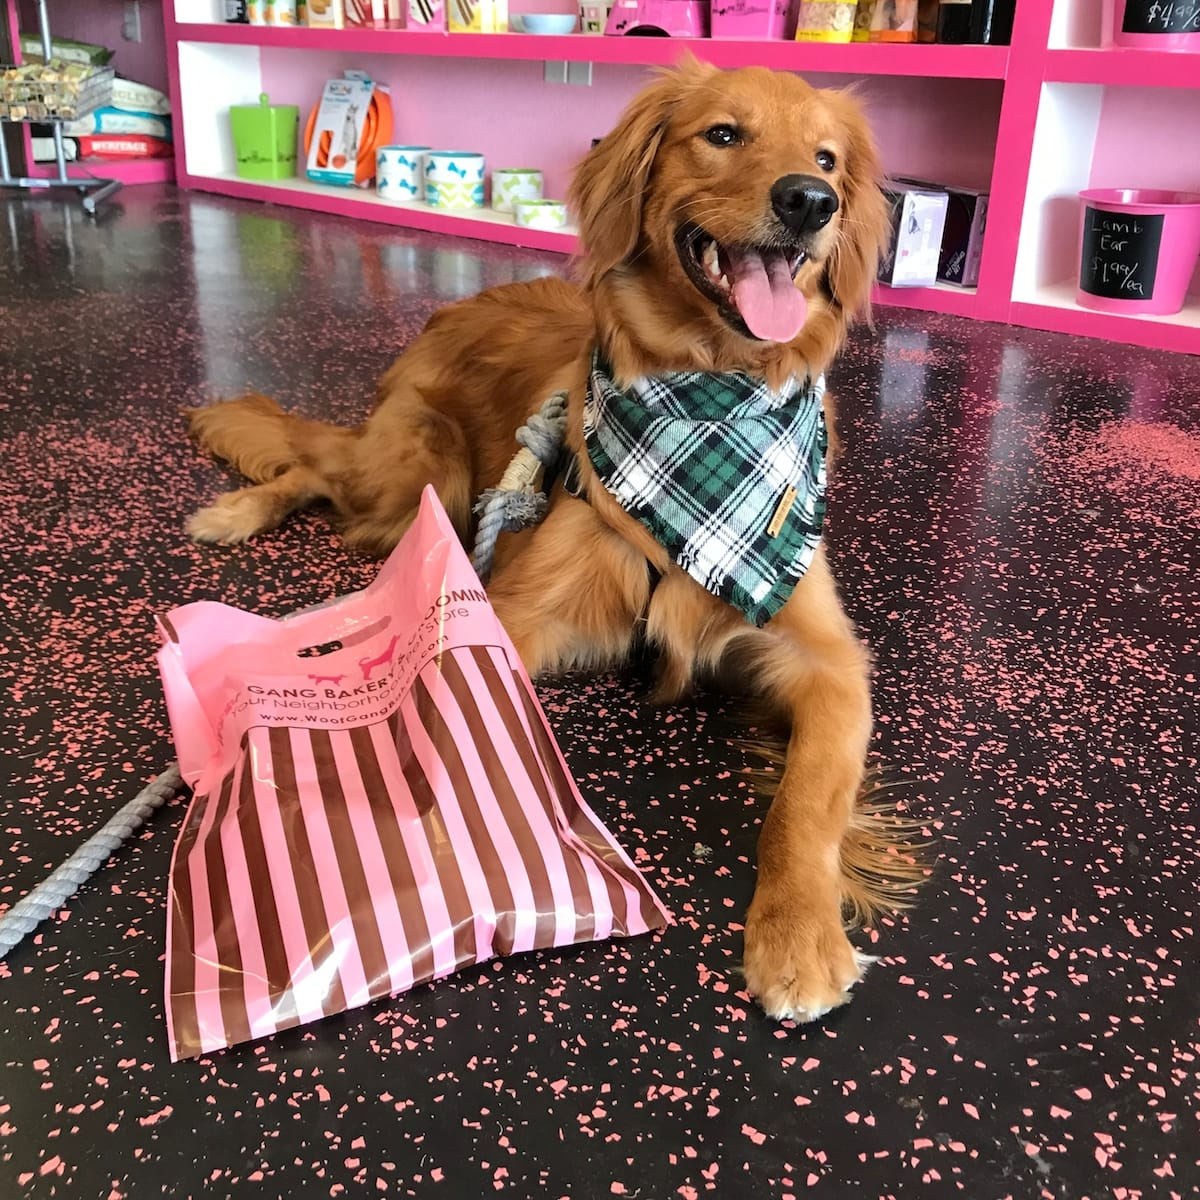 Golden Retriever With A Woof Gang Bakery Shopping Bag